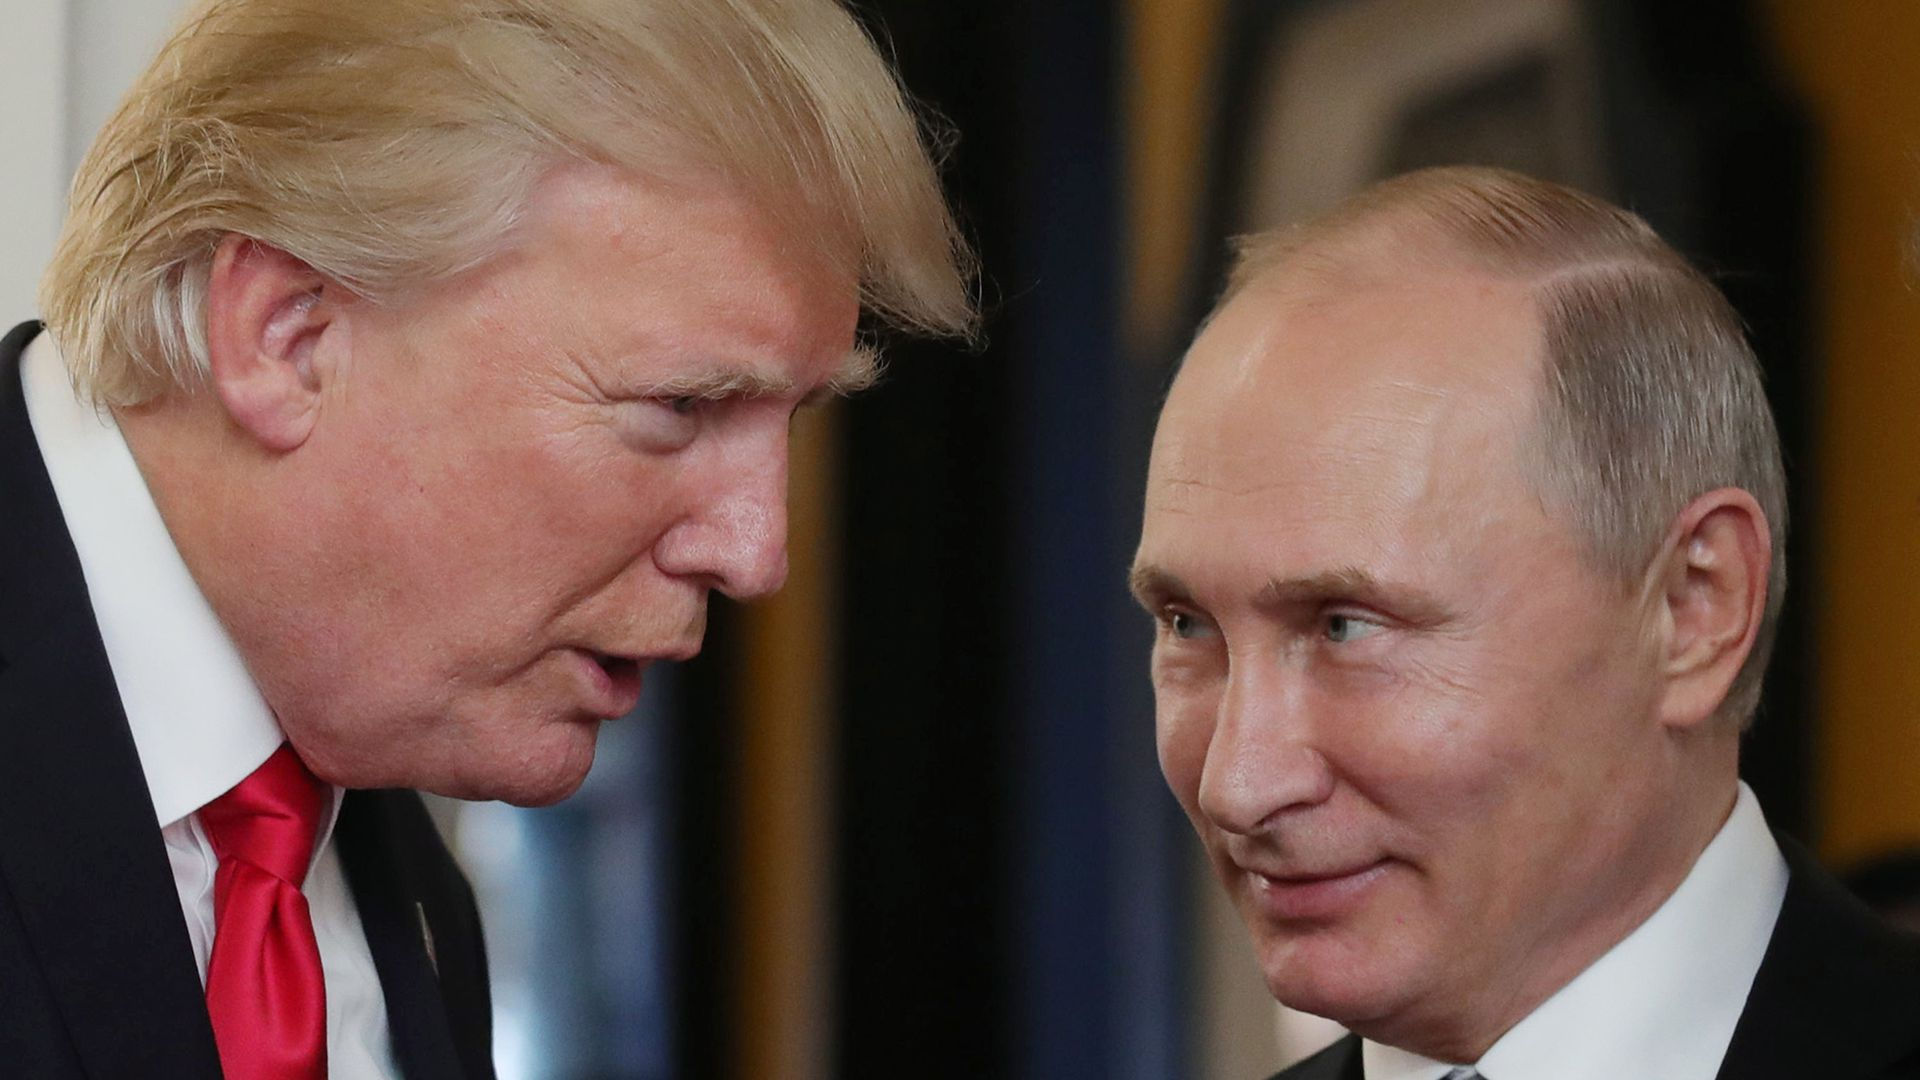 Trump and Putin facing each other in conversation